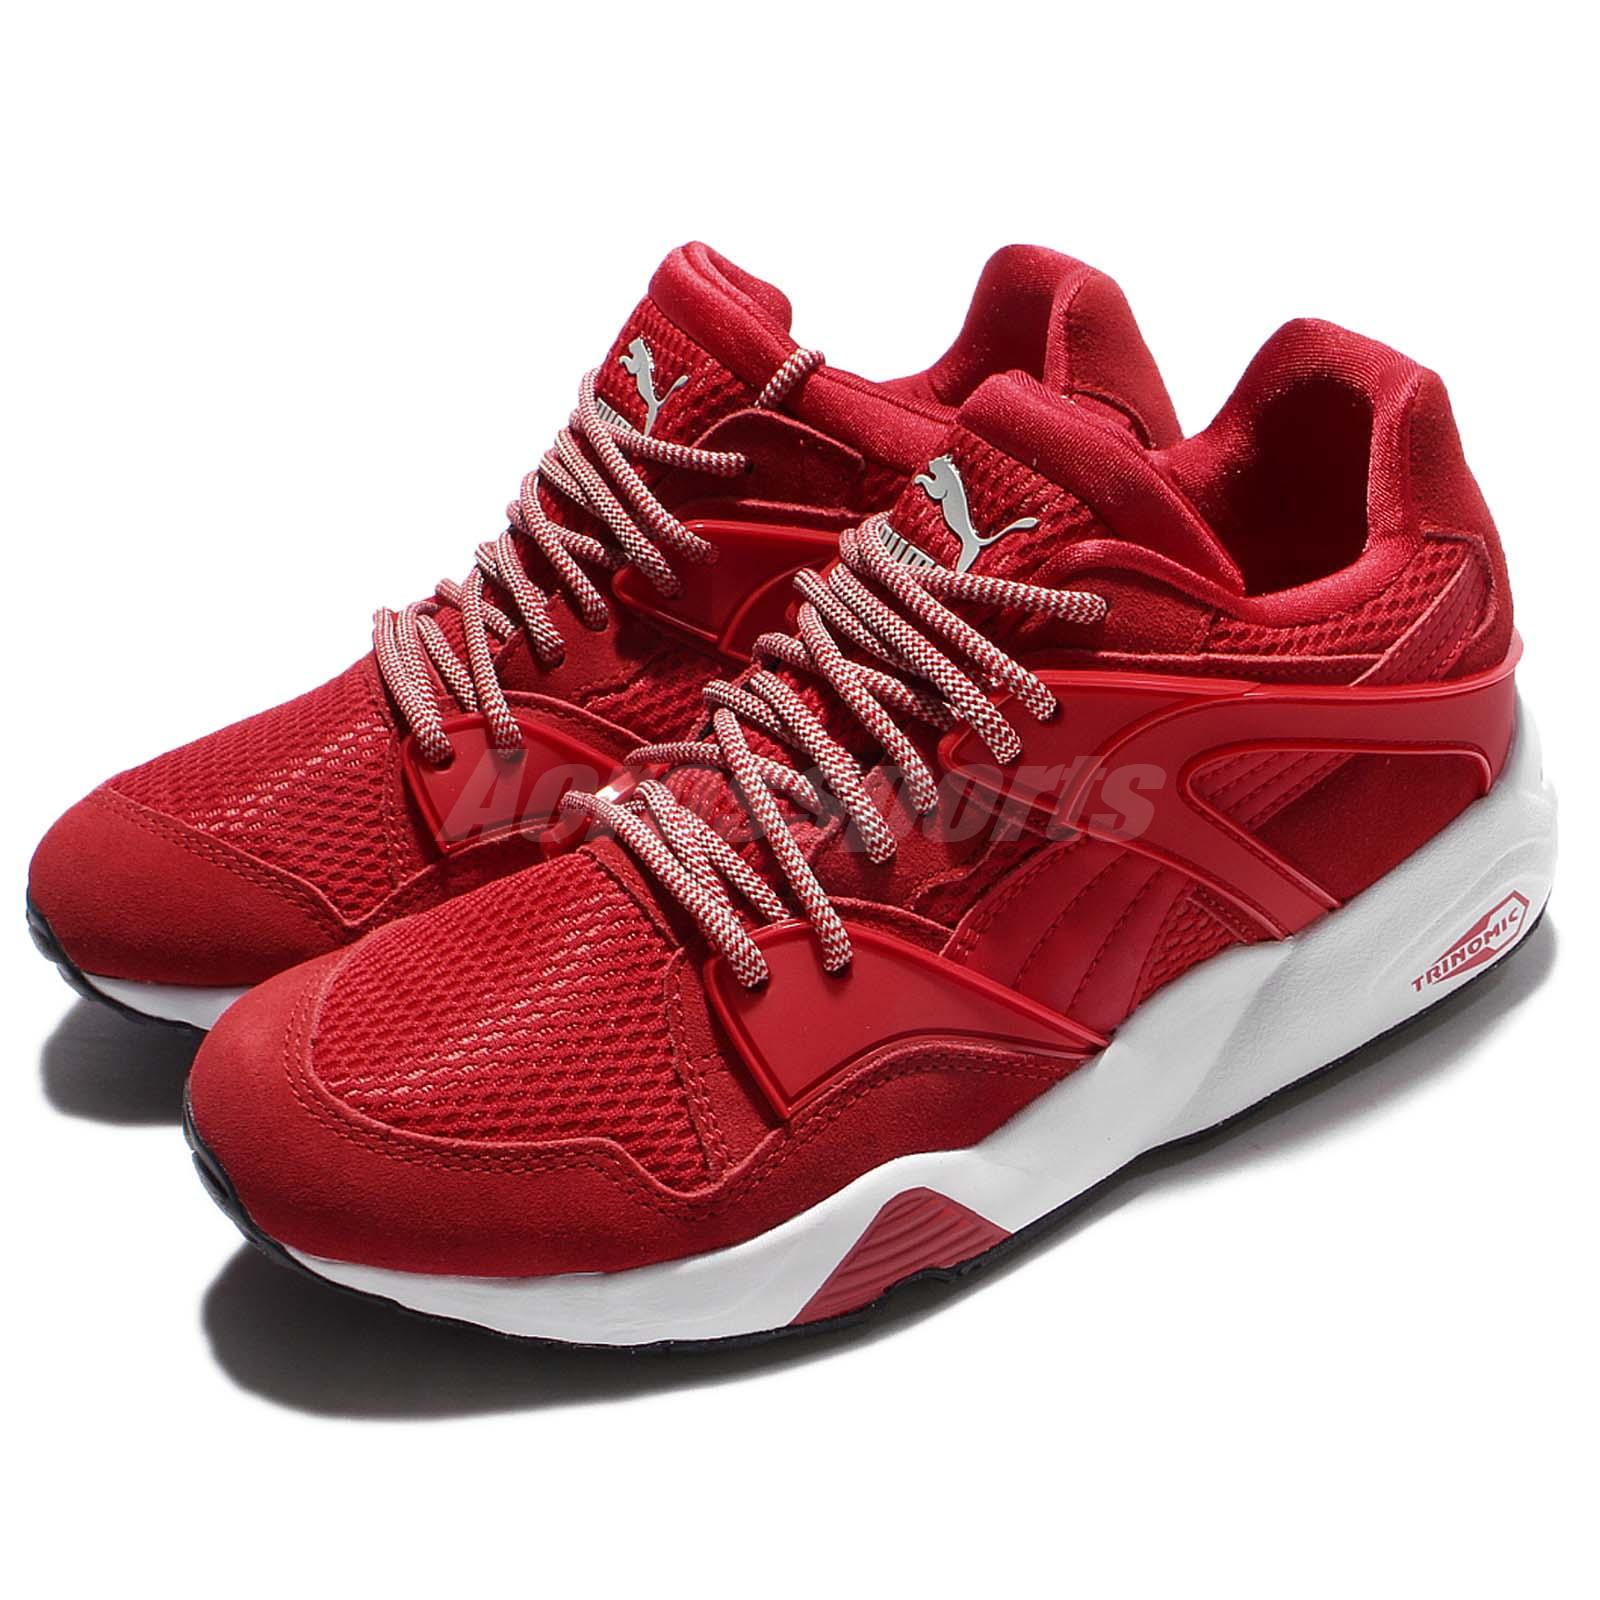 79813724d9c Details about Puma Blaze Red White Trinomic Suede Men Casual Shoes Sneakers  Trainers 362510-04